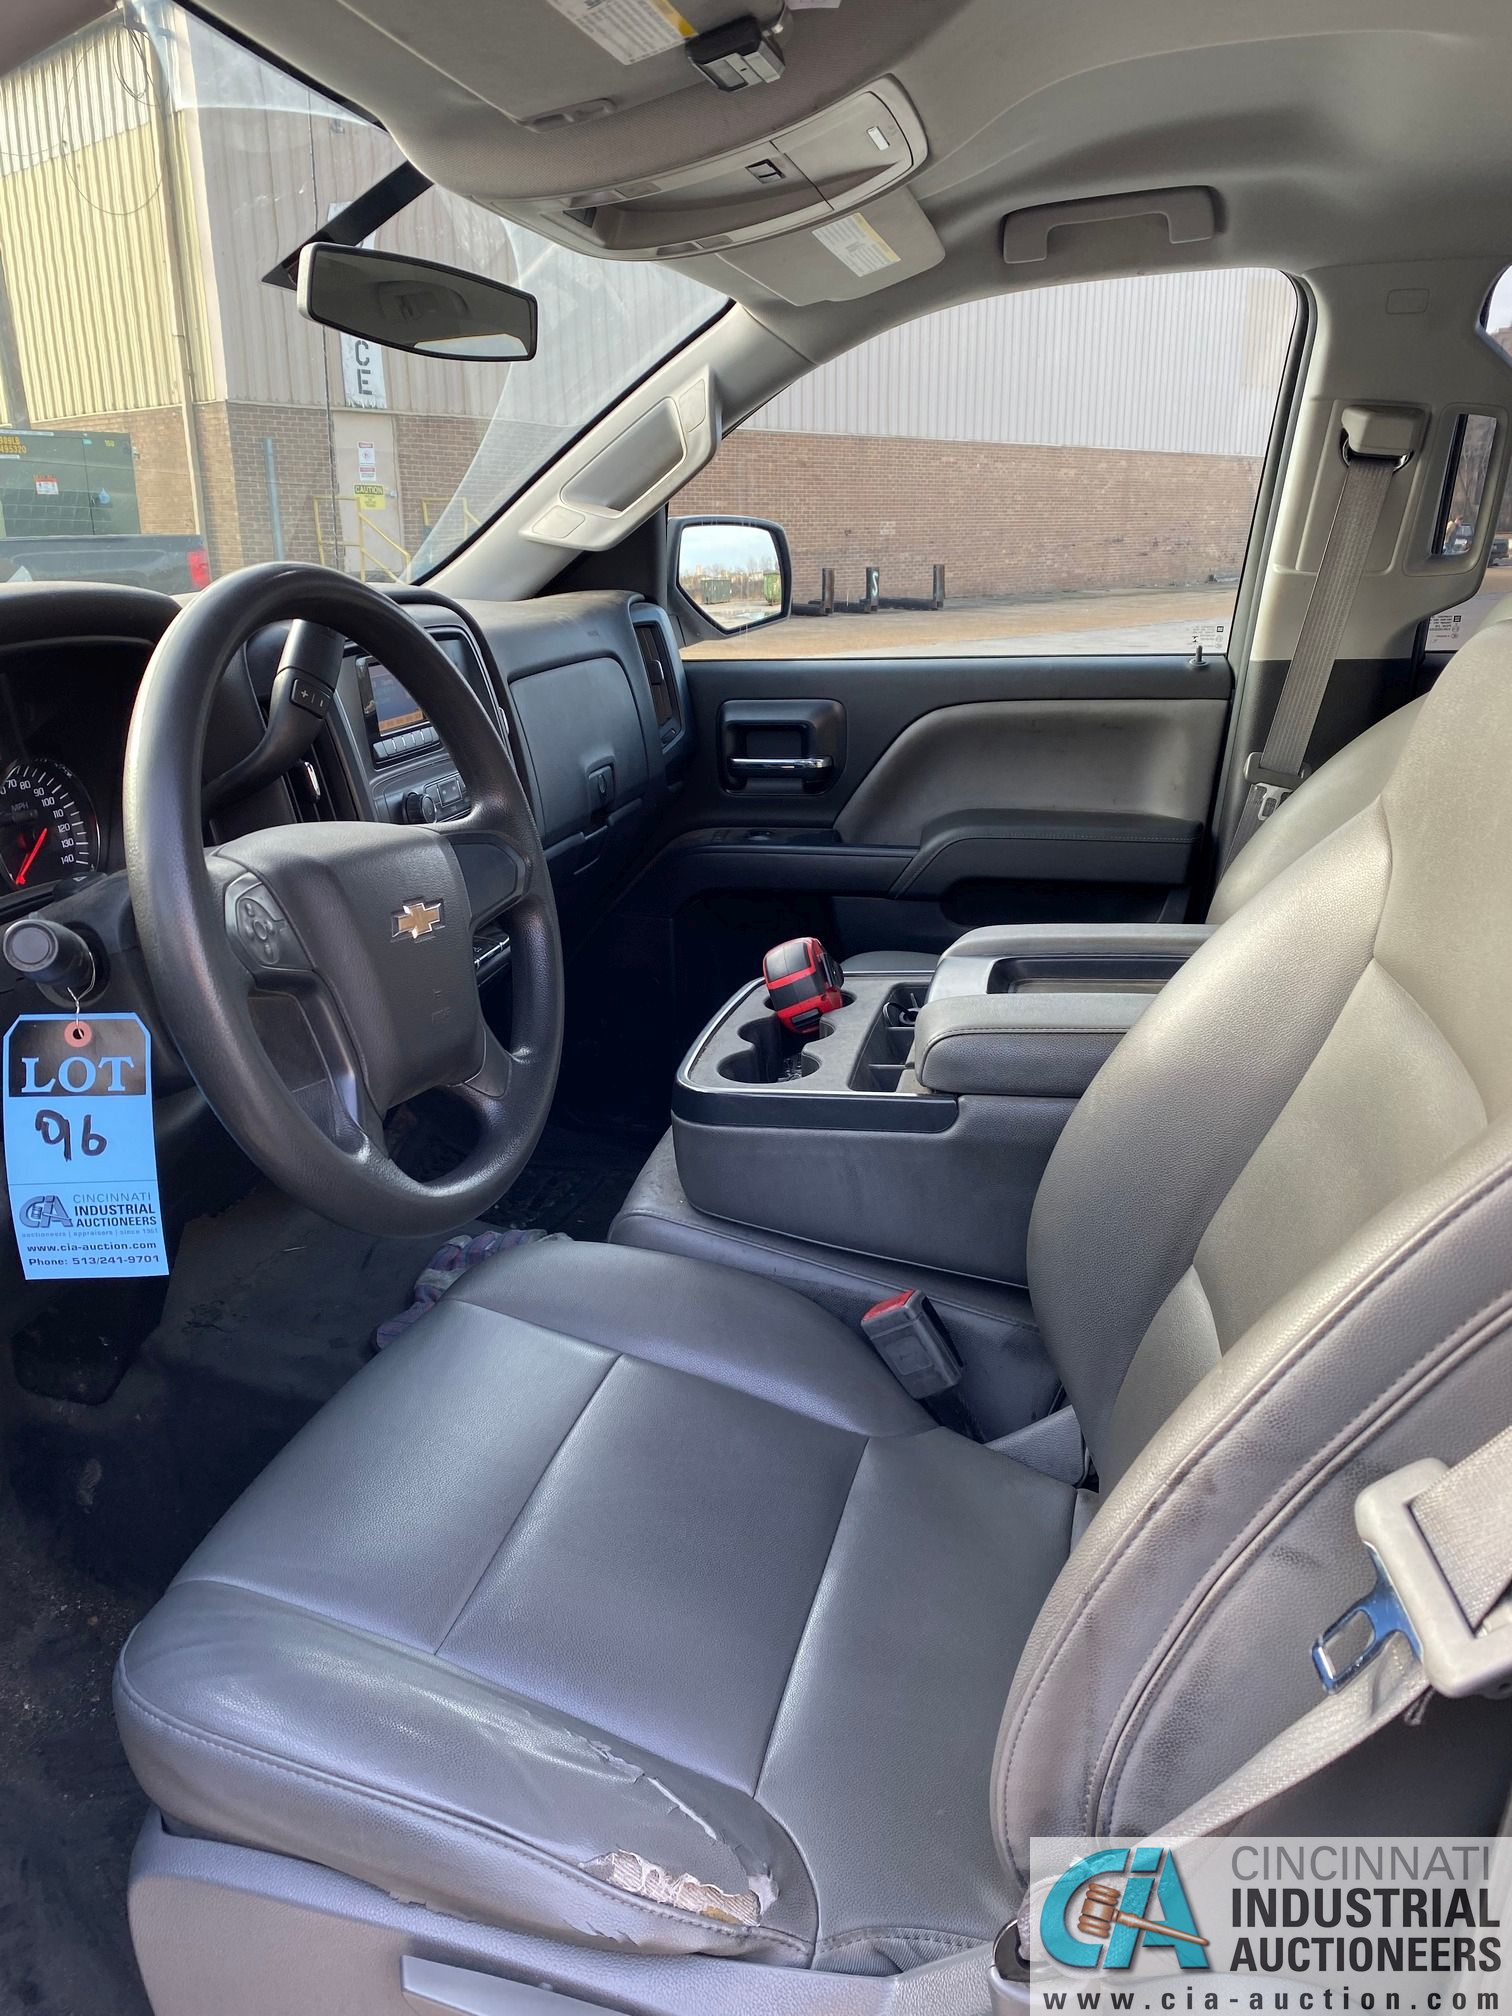 2014 CHEVROLET SILVERADO 1500 PICK UP TRUCK; VIN# 1GCRCPEH1EZ239274, 67,252 MILES SHOWING, 4.3 L, - Image 12 of 13